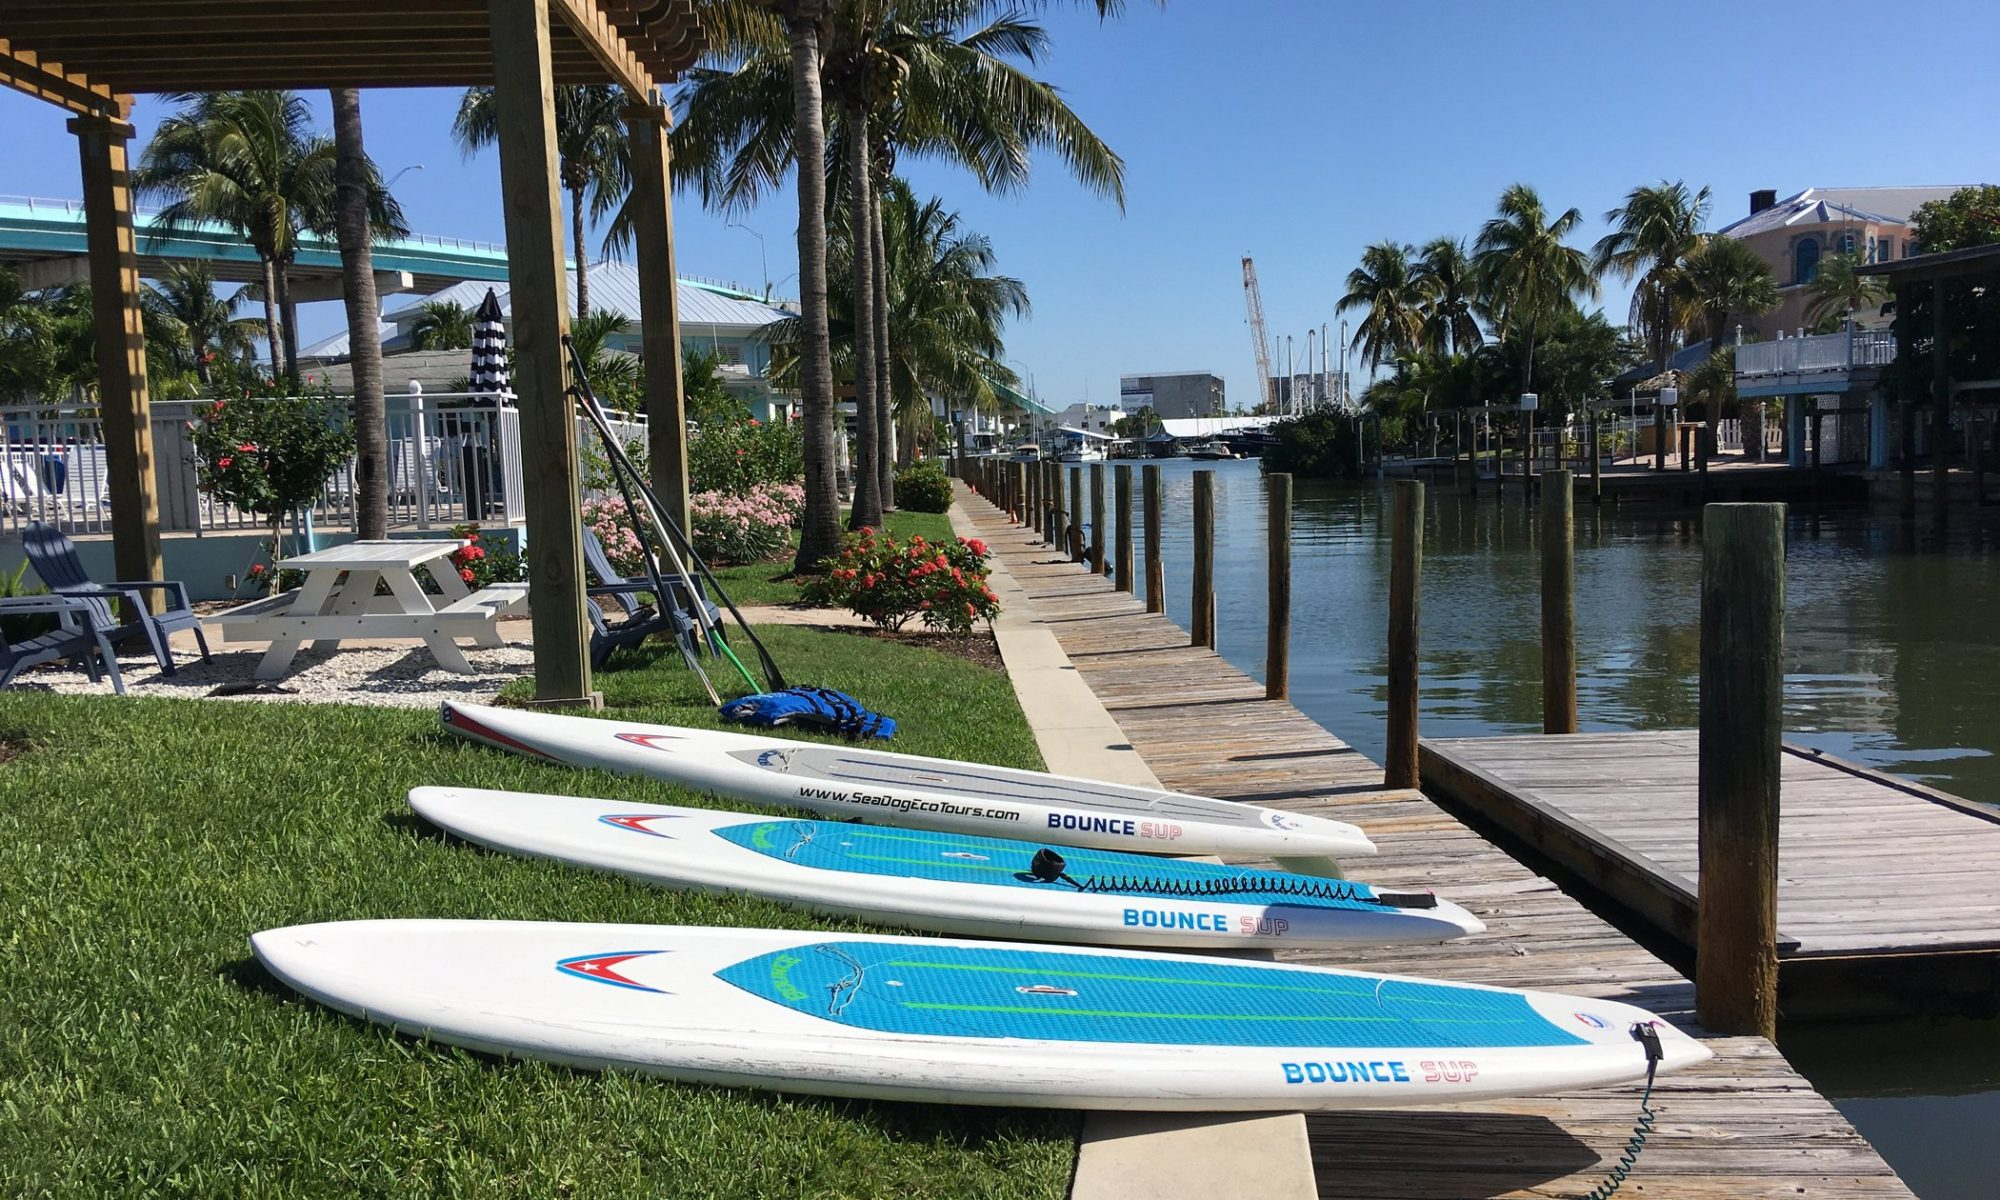 launch by canal matanzas inn - image